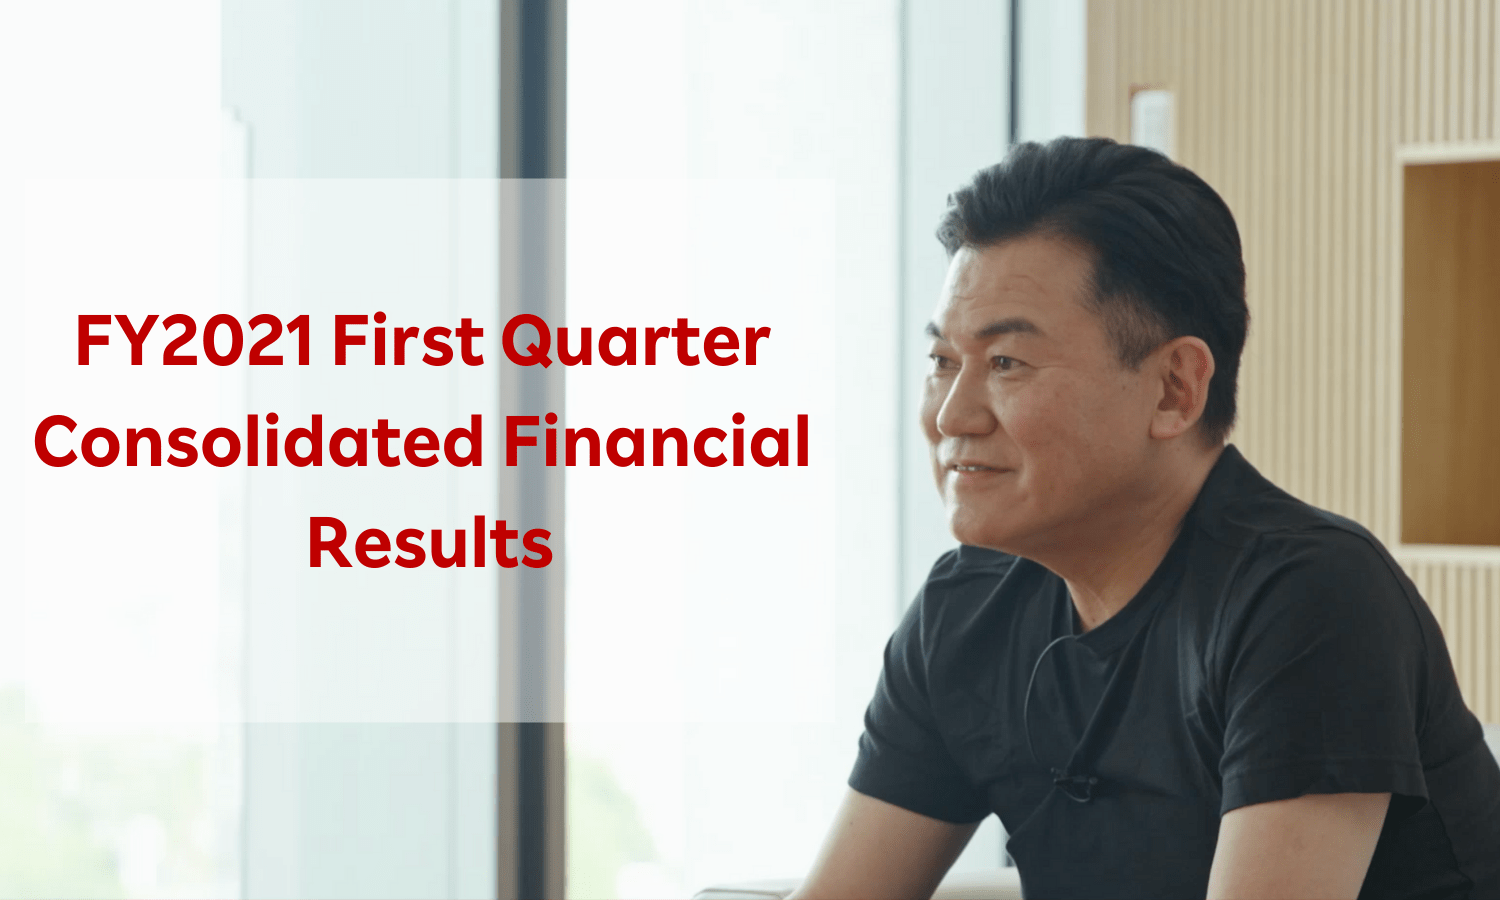 [WATCH] Q1 FY2021 Results: CEO Mickey Mikitani fields important questions on partnerships, mobile and fintech